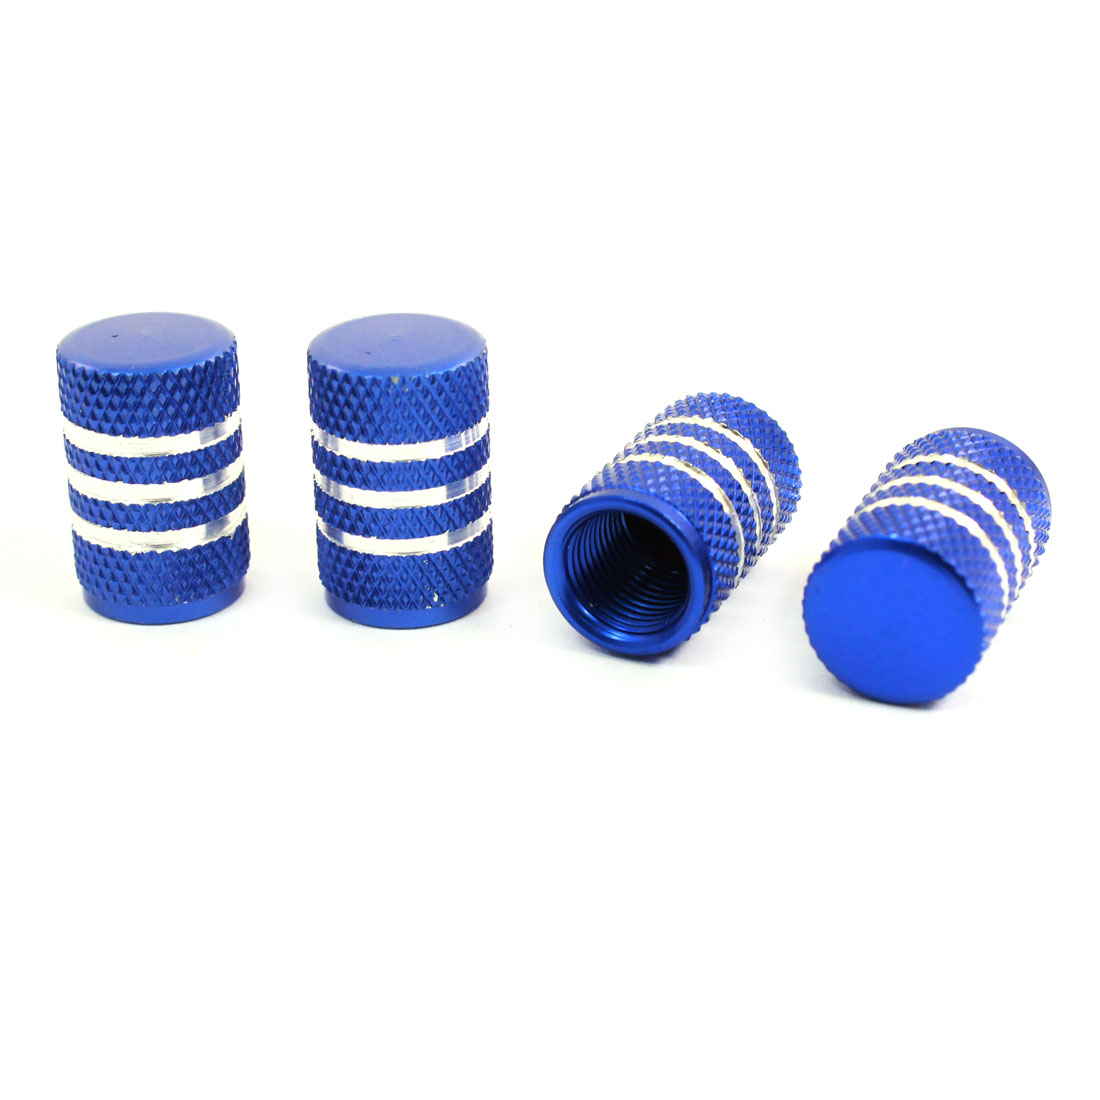 4 Pcs Blue Alloy Auto Car Tyre Tire Valve Caps Protectors Covers 9mm Inner Dia